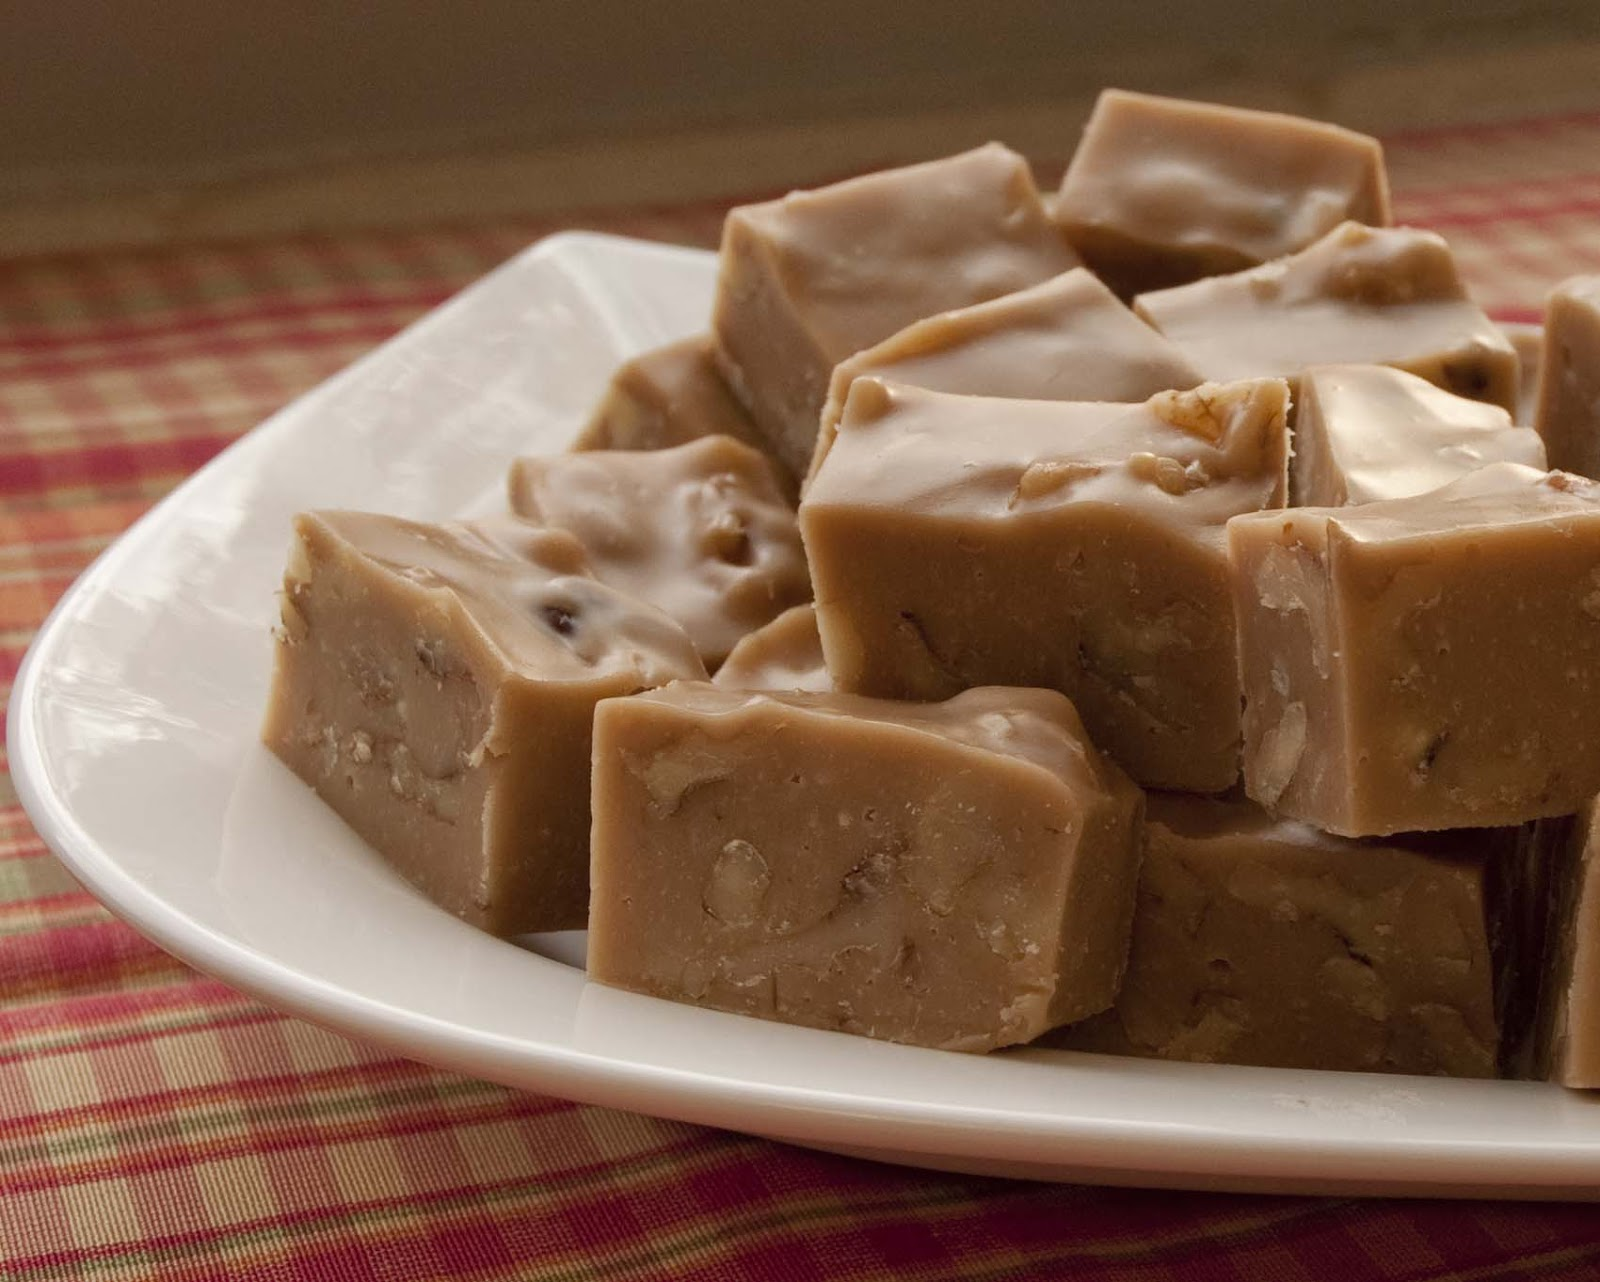 Scrambled Henfruit: Maple Walnut Fudge